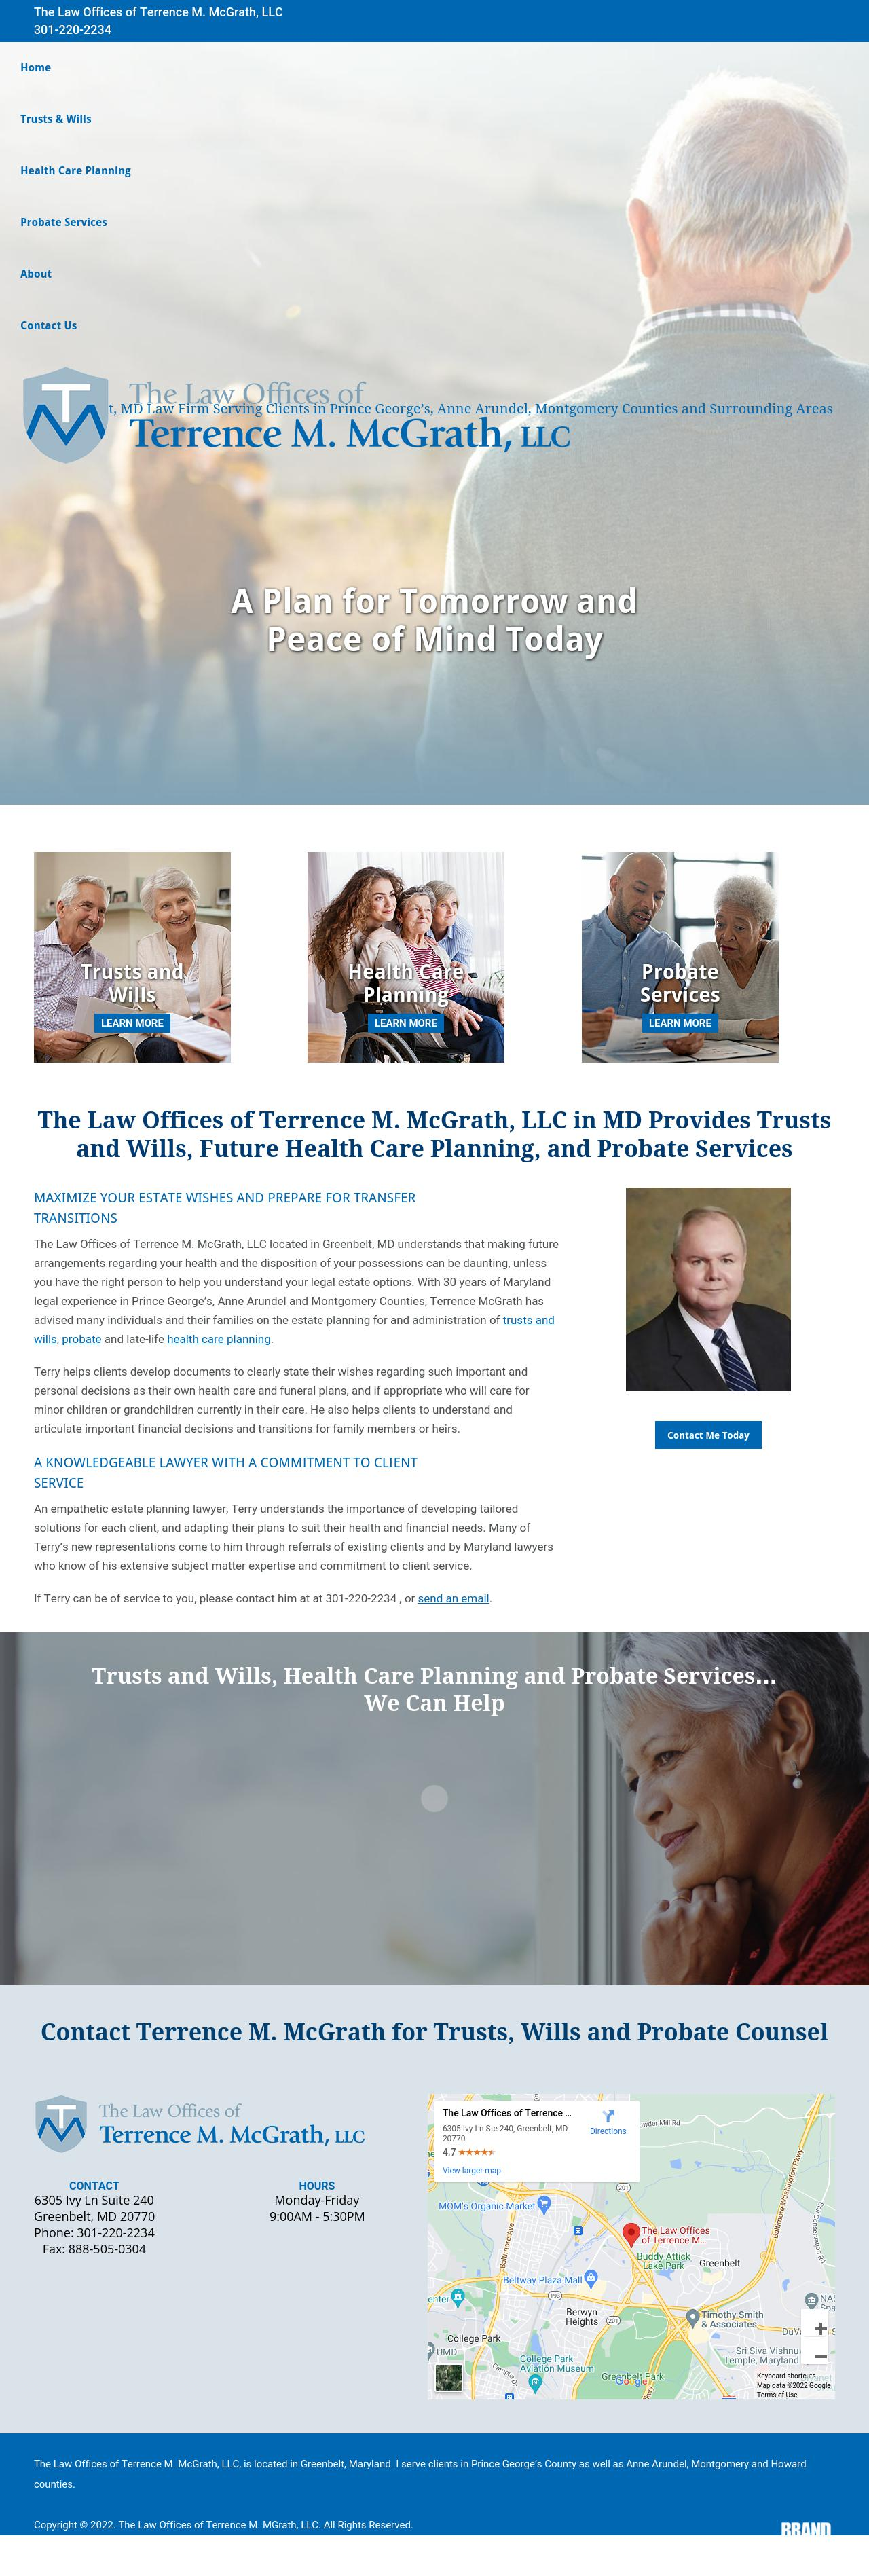 Law Offices of Terrence M. McGrath, LLC - Greenbelt MD Lawyers